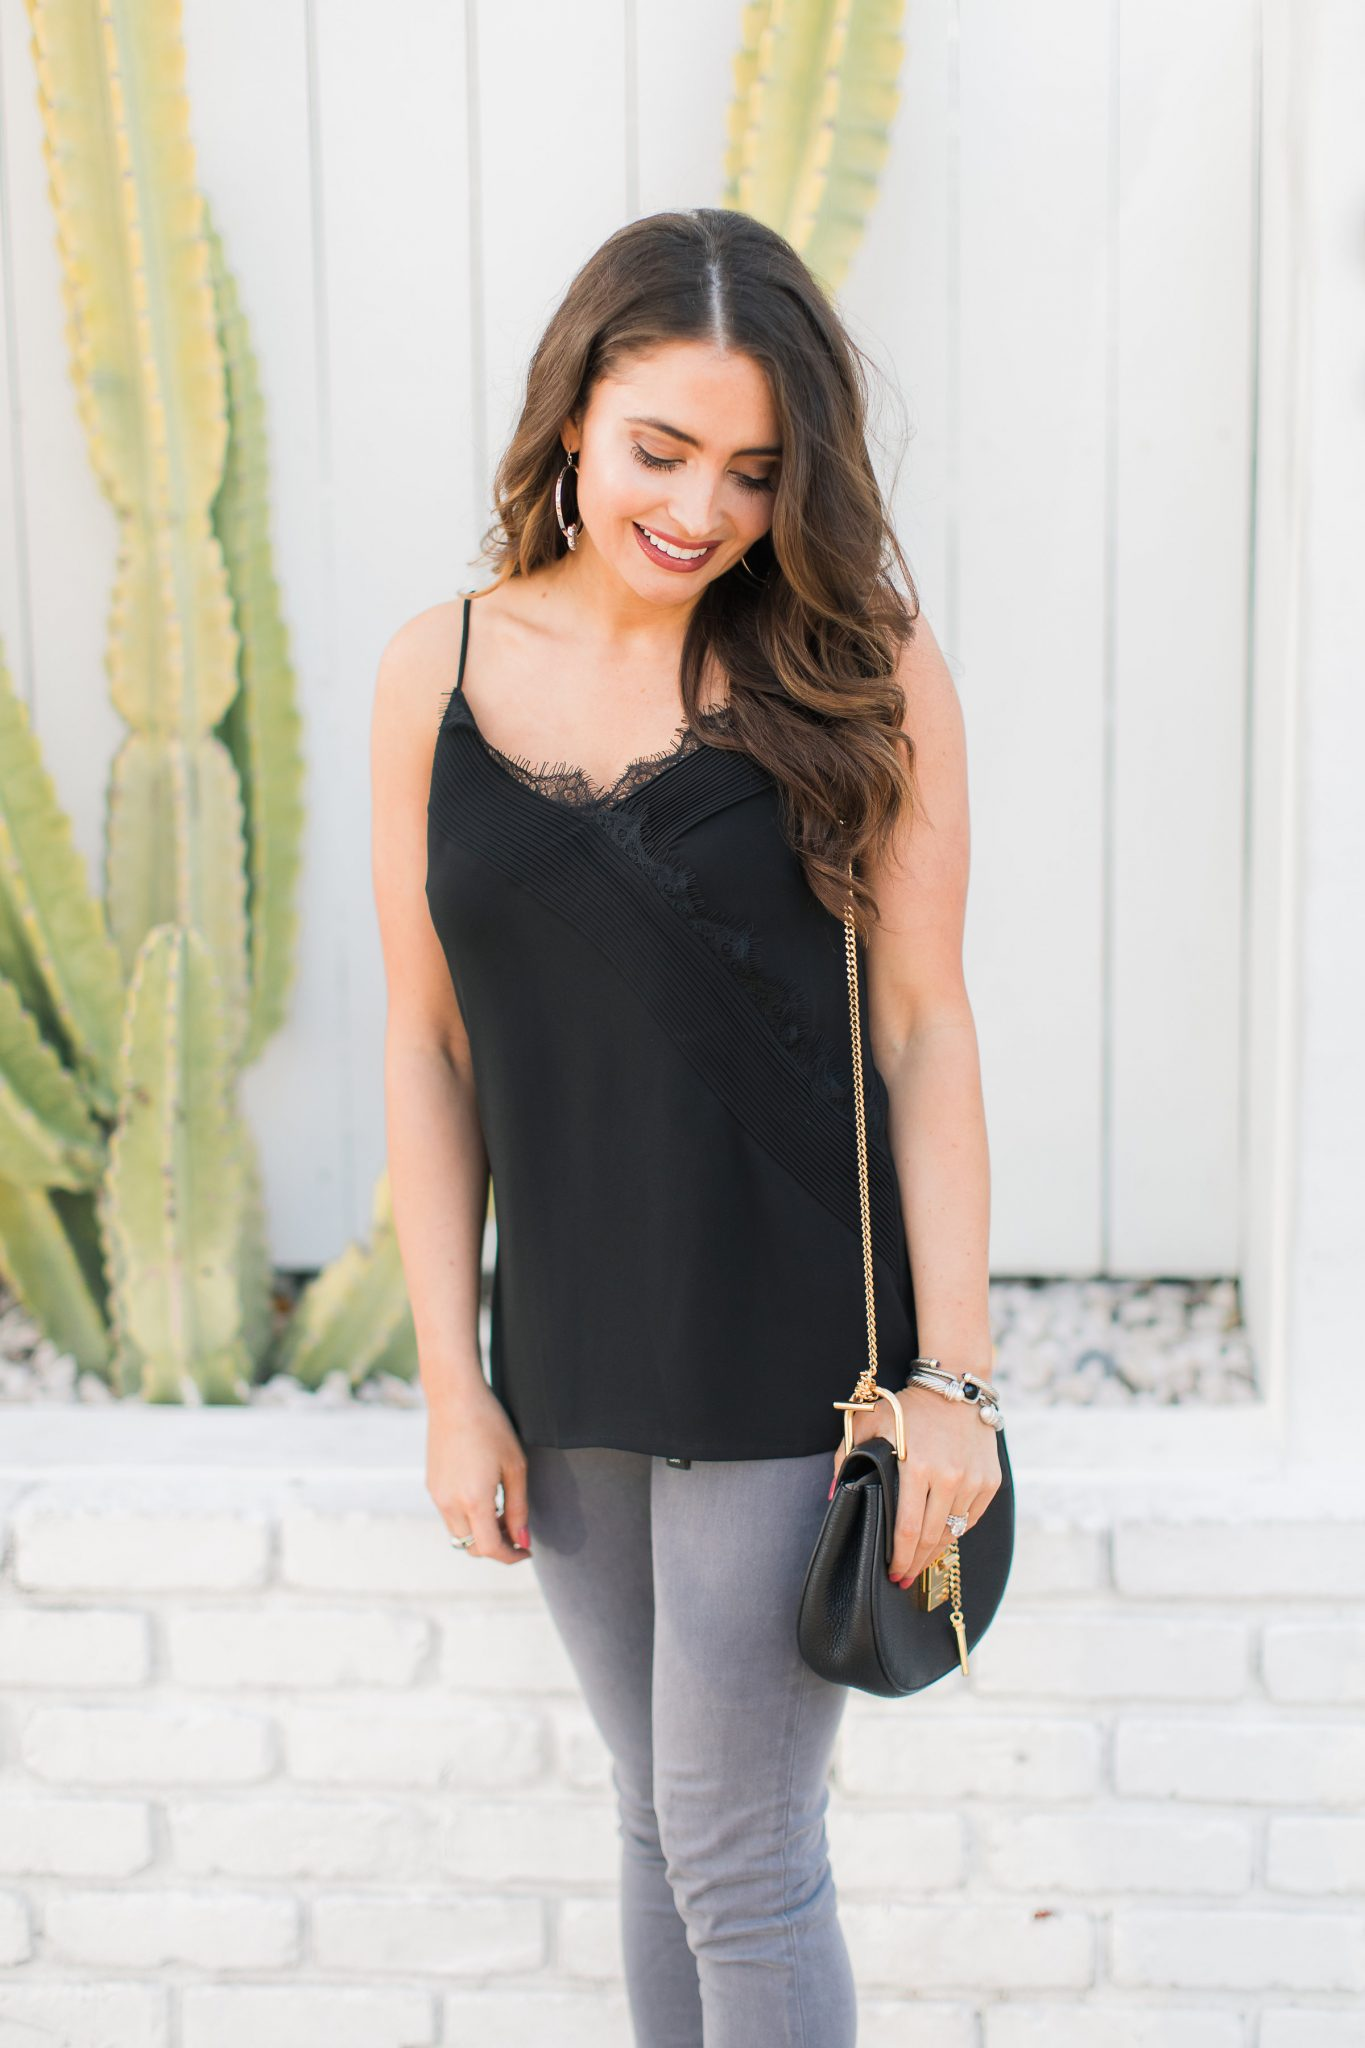 DAILYLOOK Personal Styling Service Review by popular Orange County fashion blogger Maxie Elle